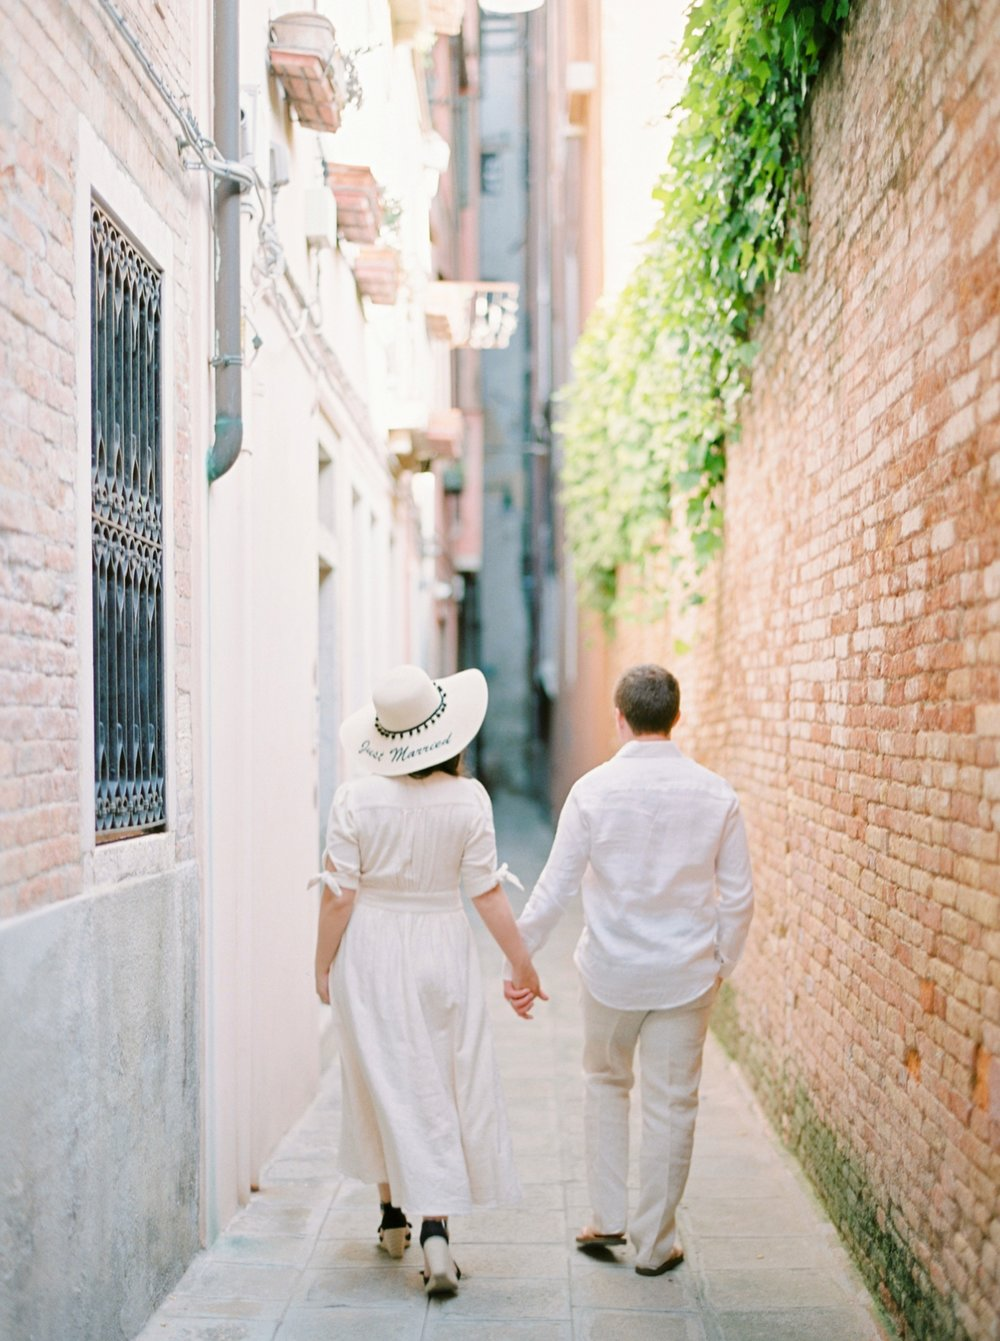 Venice italy wedding photographers | couples honeymoon session | exploring venice canals with film photographer justine milton